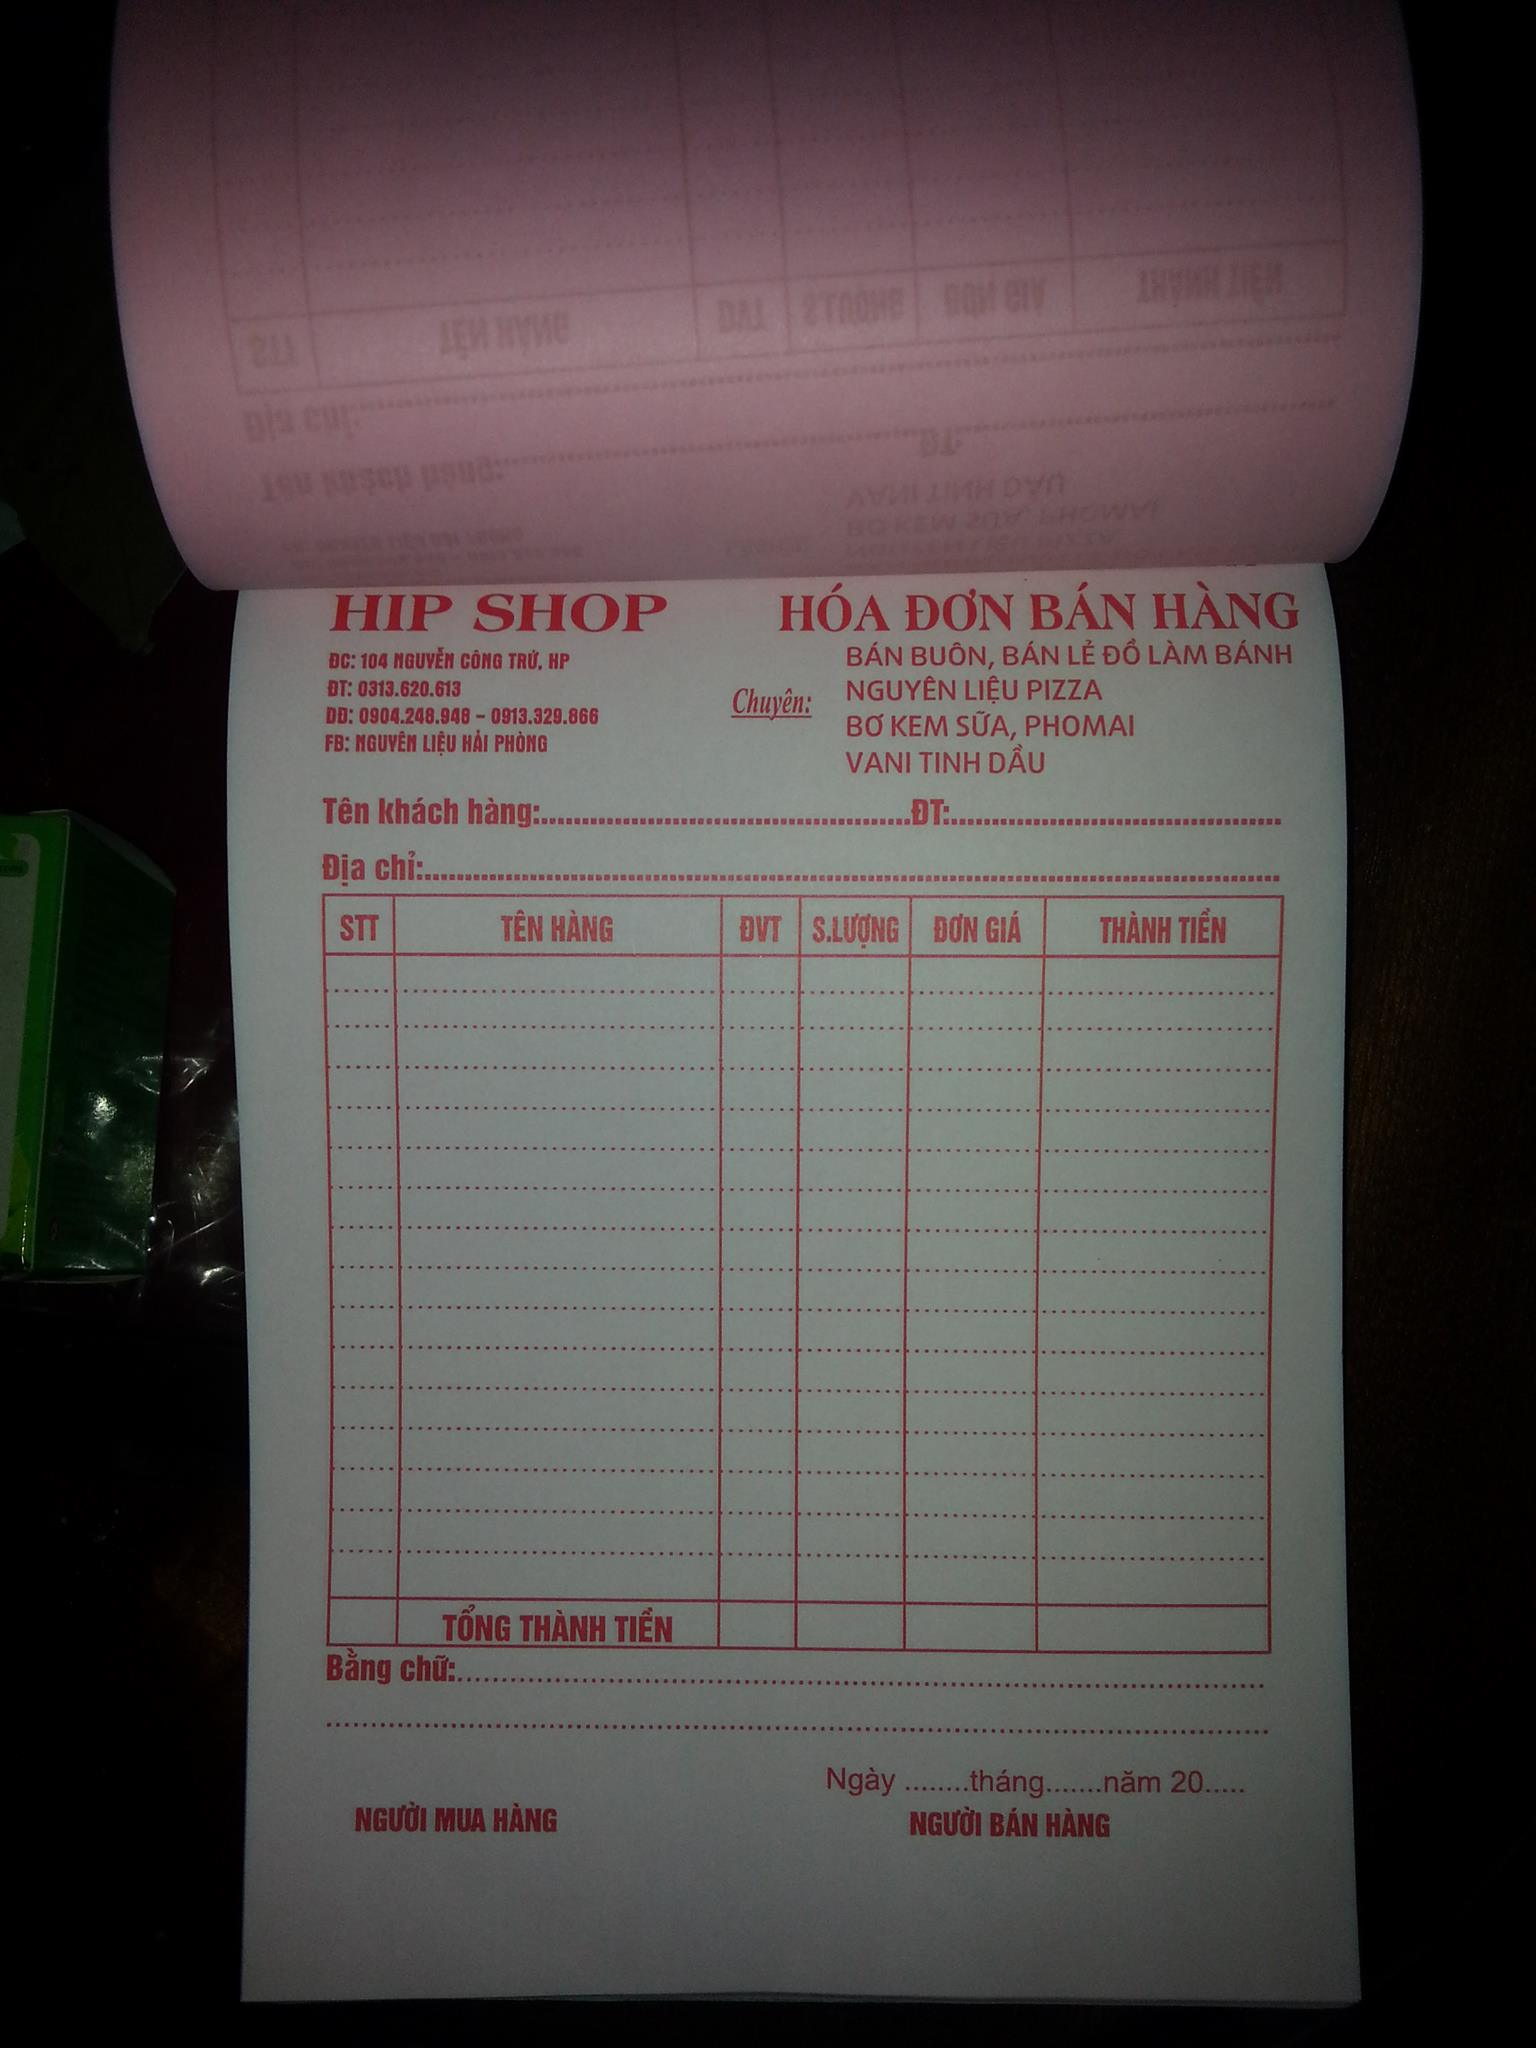 hoa don ban hang hip shop 02